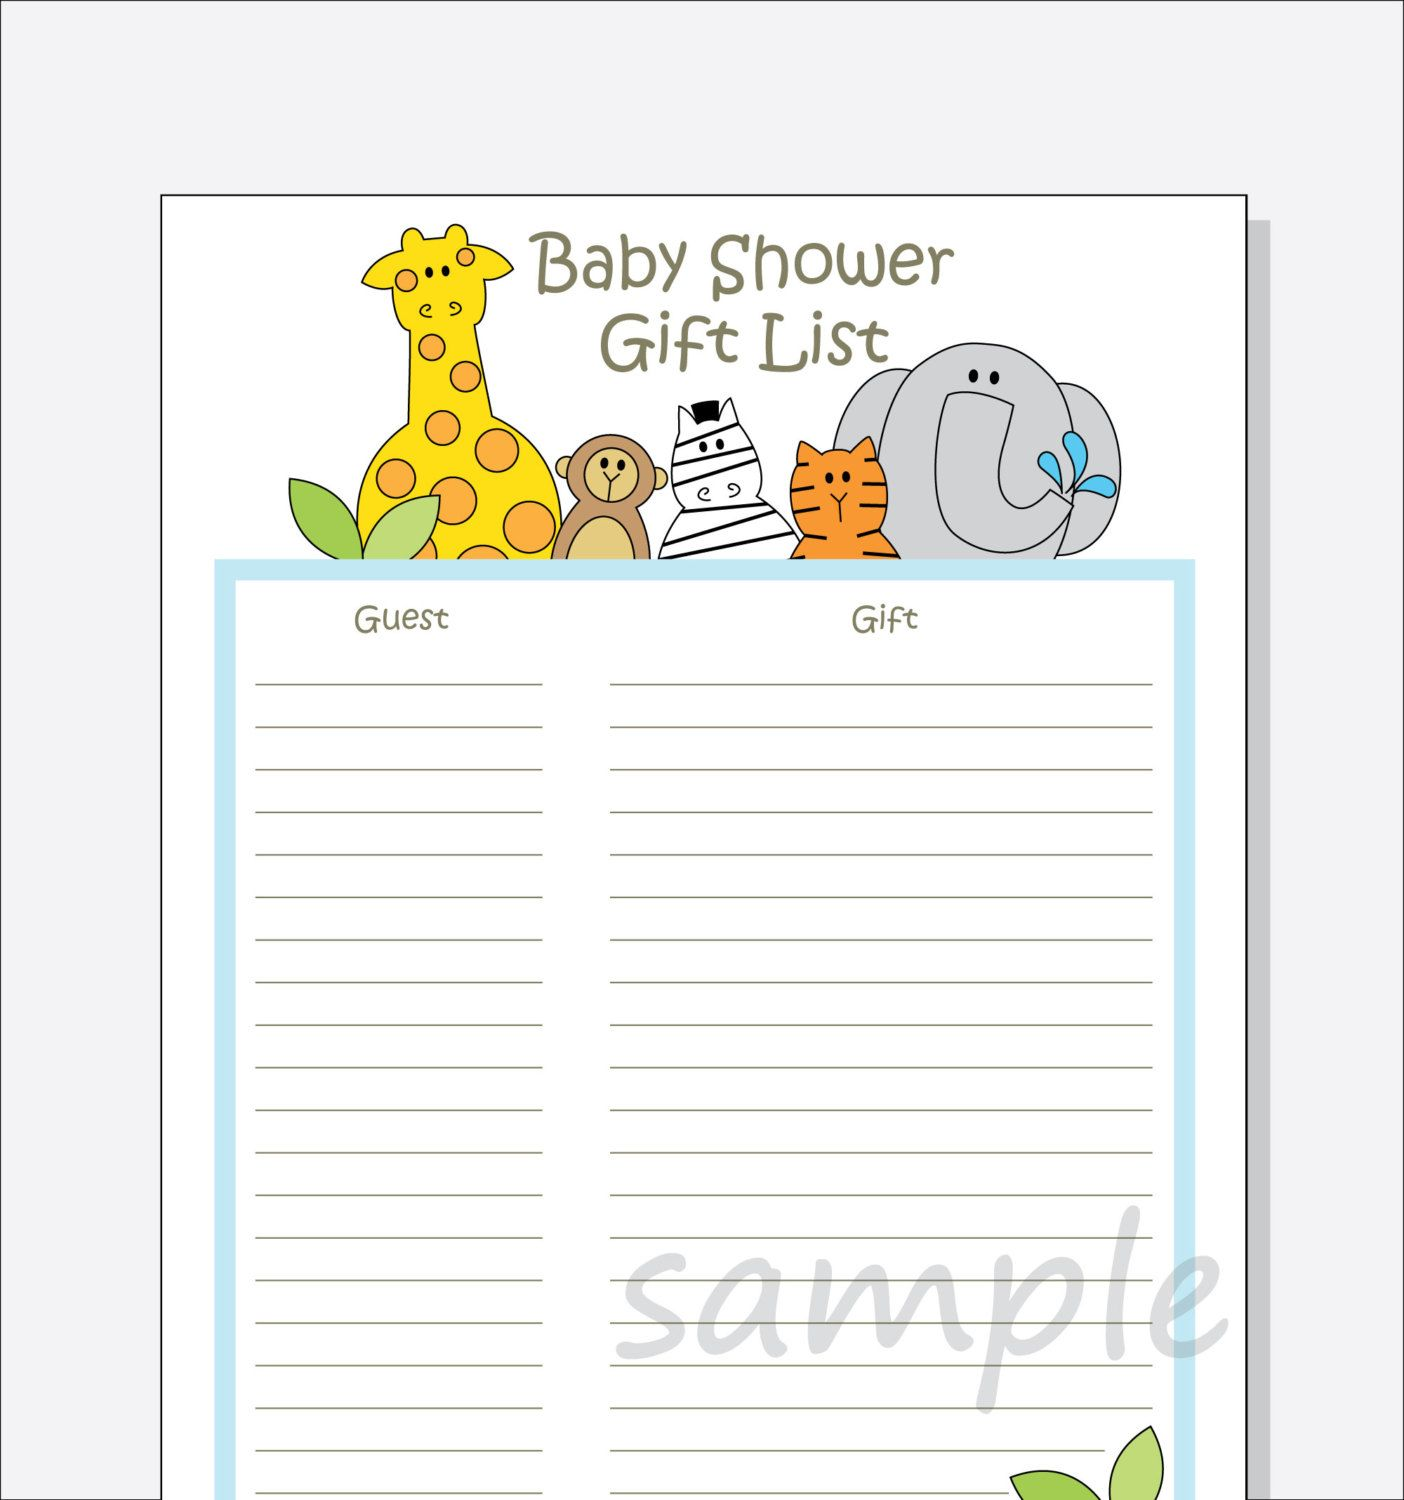 DIY Baby Shower Guest Gift List Printable   Jungle Animals Design With  Blue, Pink Or Green Border  Baby Shower Guest List Template